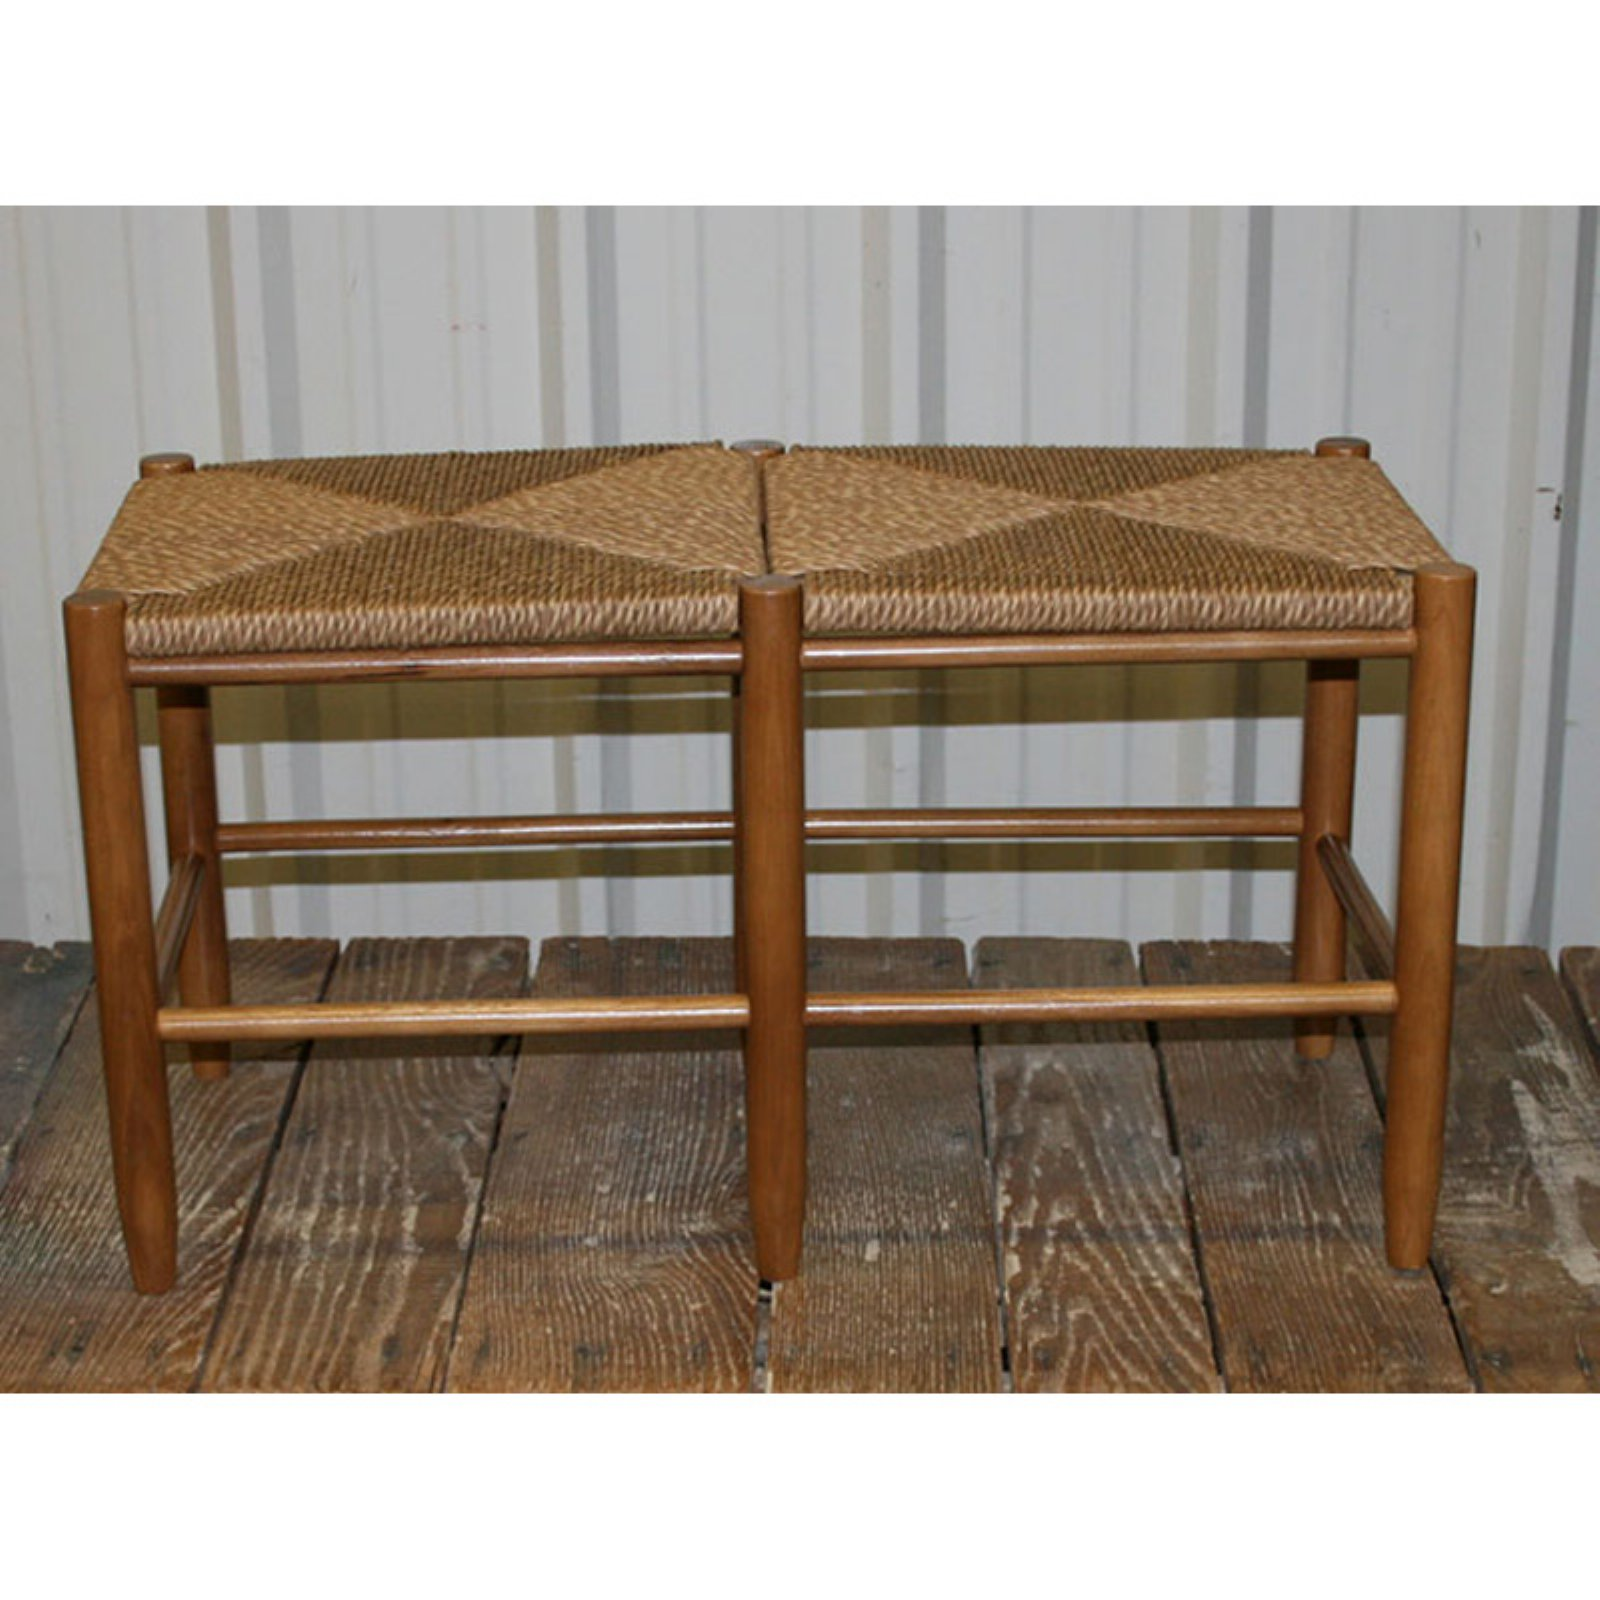 Dixie Seating Calabash Double Seat Backless Bench